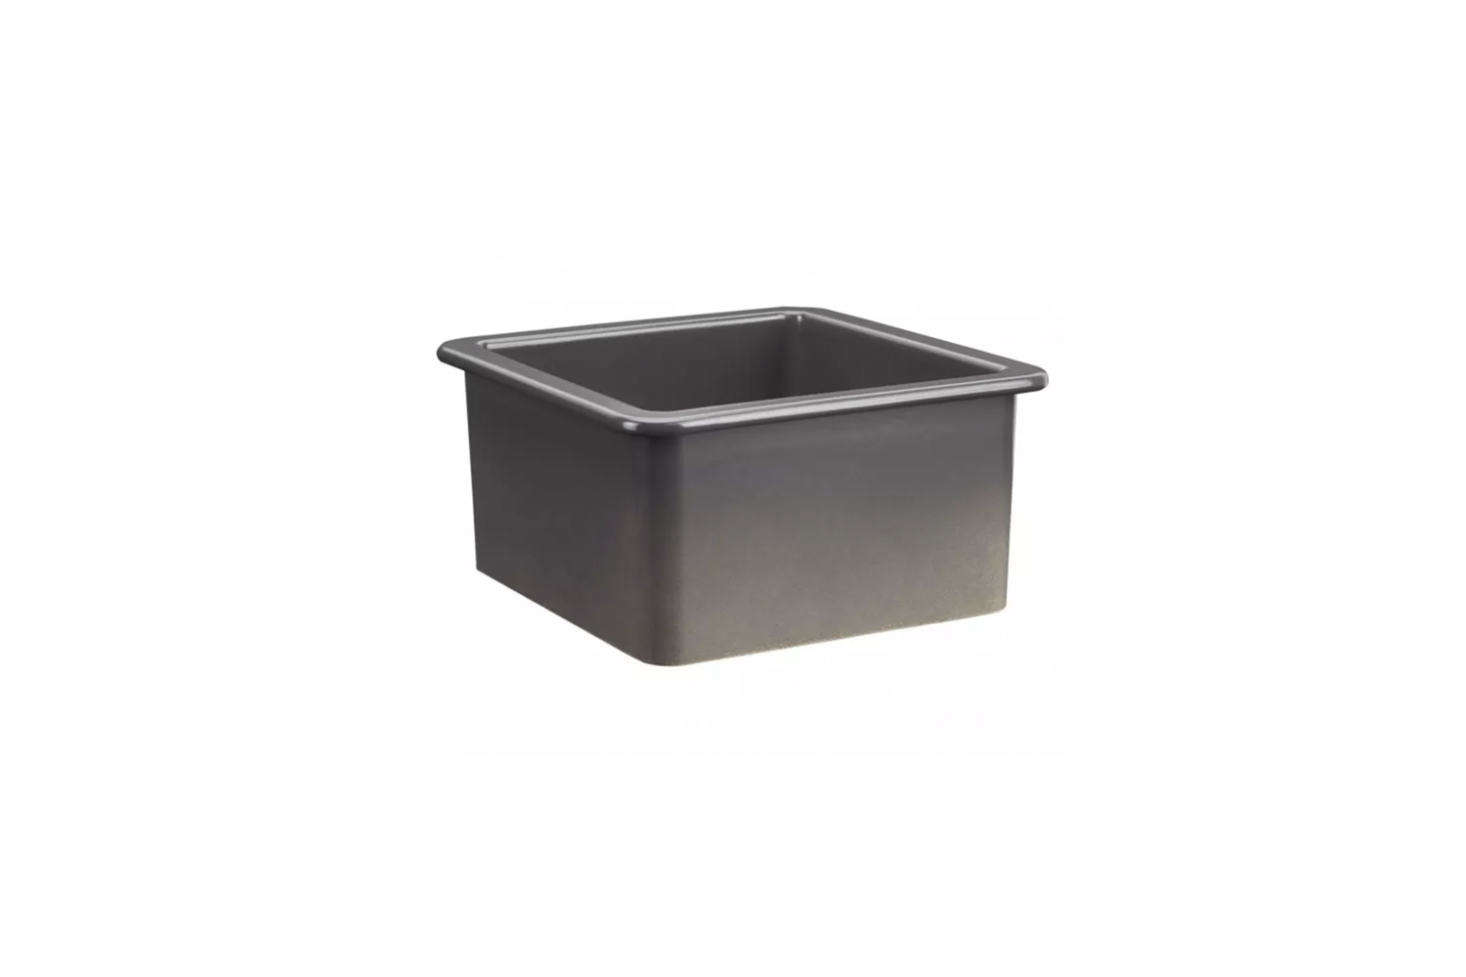 From Signature Hardware, the Derin  Inch Square Undermount Fireclay Prep Sink in Dark Gray starts at $5. It&#8